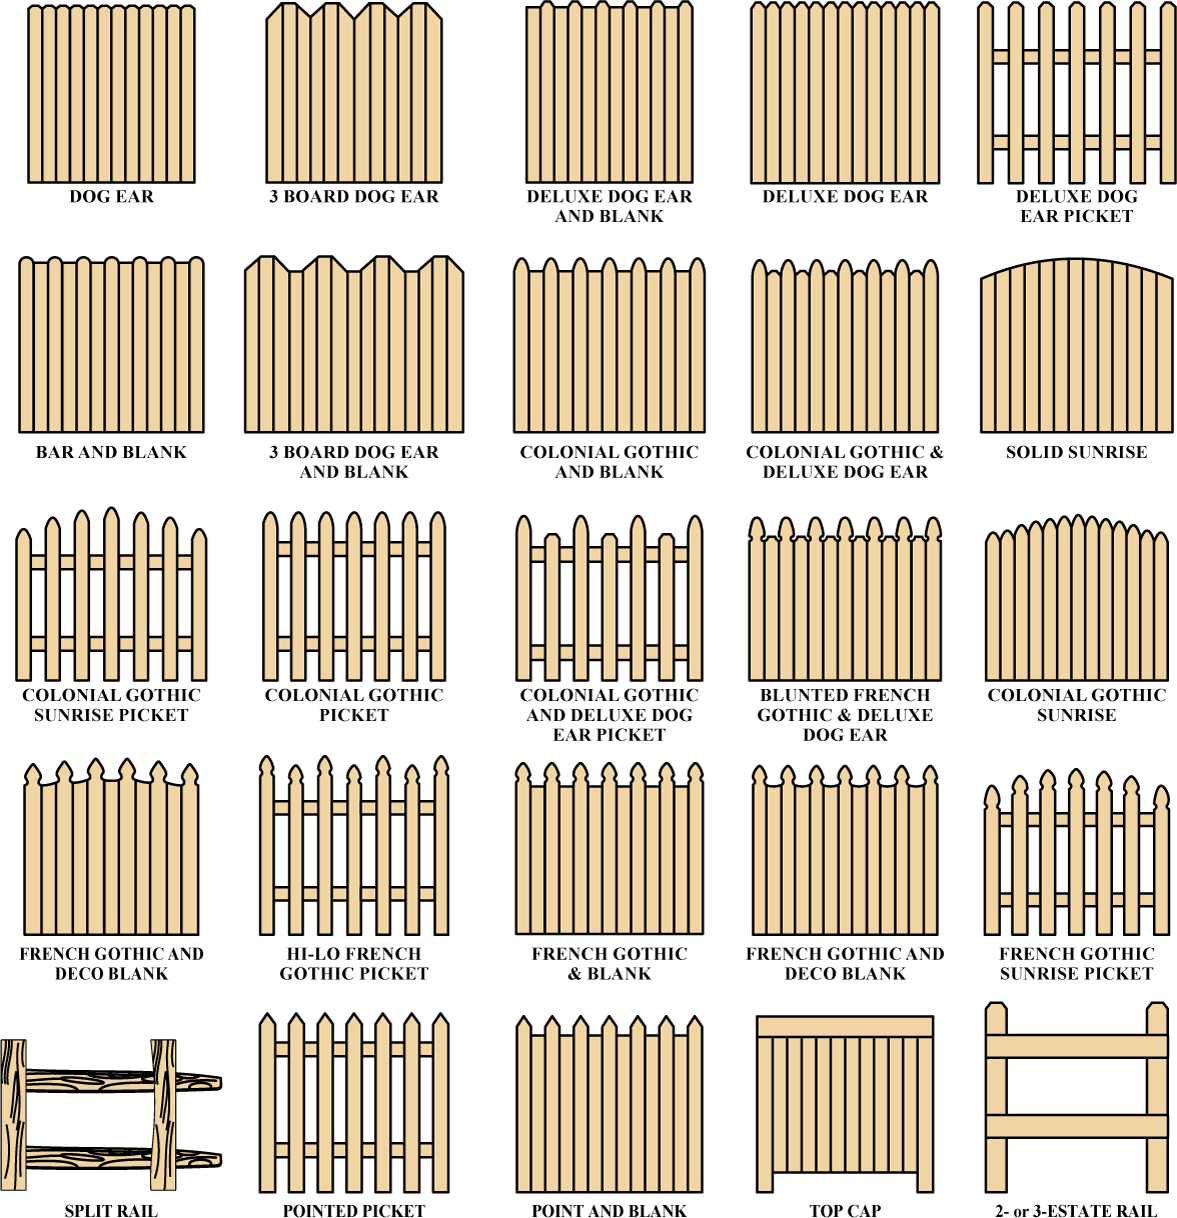 Hills clipart beautiful fence. Styles png miscellaneous reference